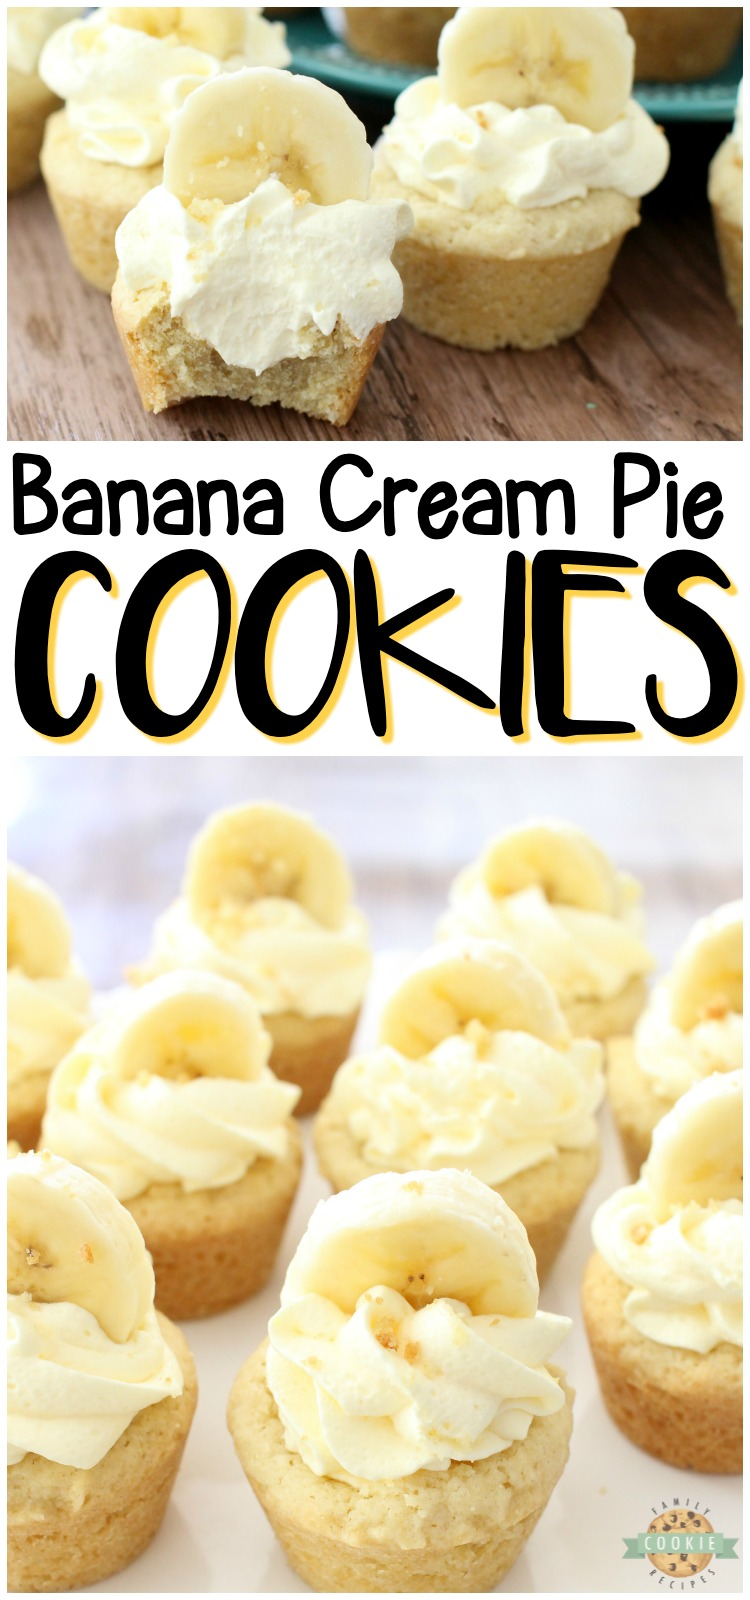 Banana Cream Pie Cookies are everything you love about Banana Cream Pie, in bite-sized cookie form!Easy family favorite banana cookie recipe! #cookies #banana #pie #bananacream #dessert #homemade #baking from FAMILY COOKIE RECIPES